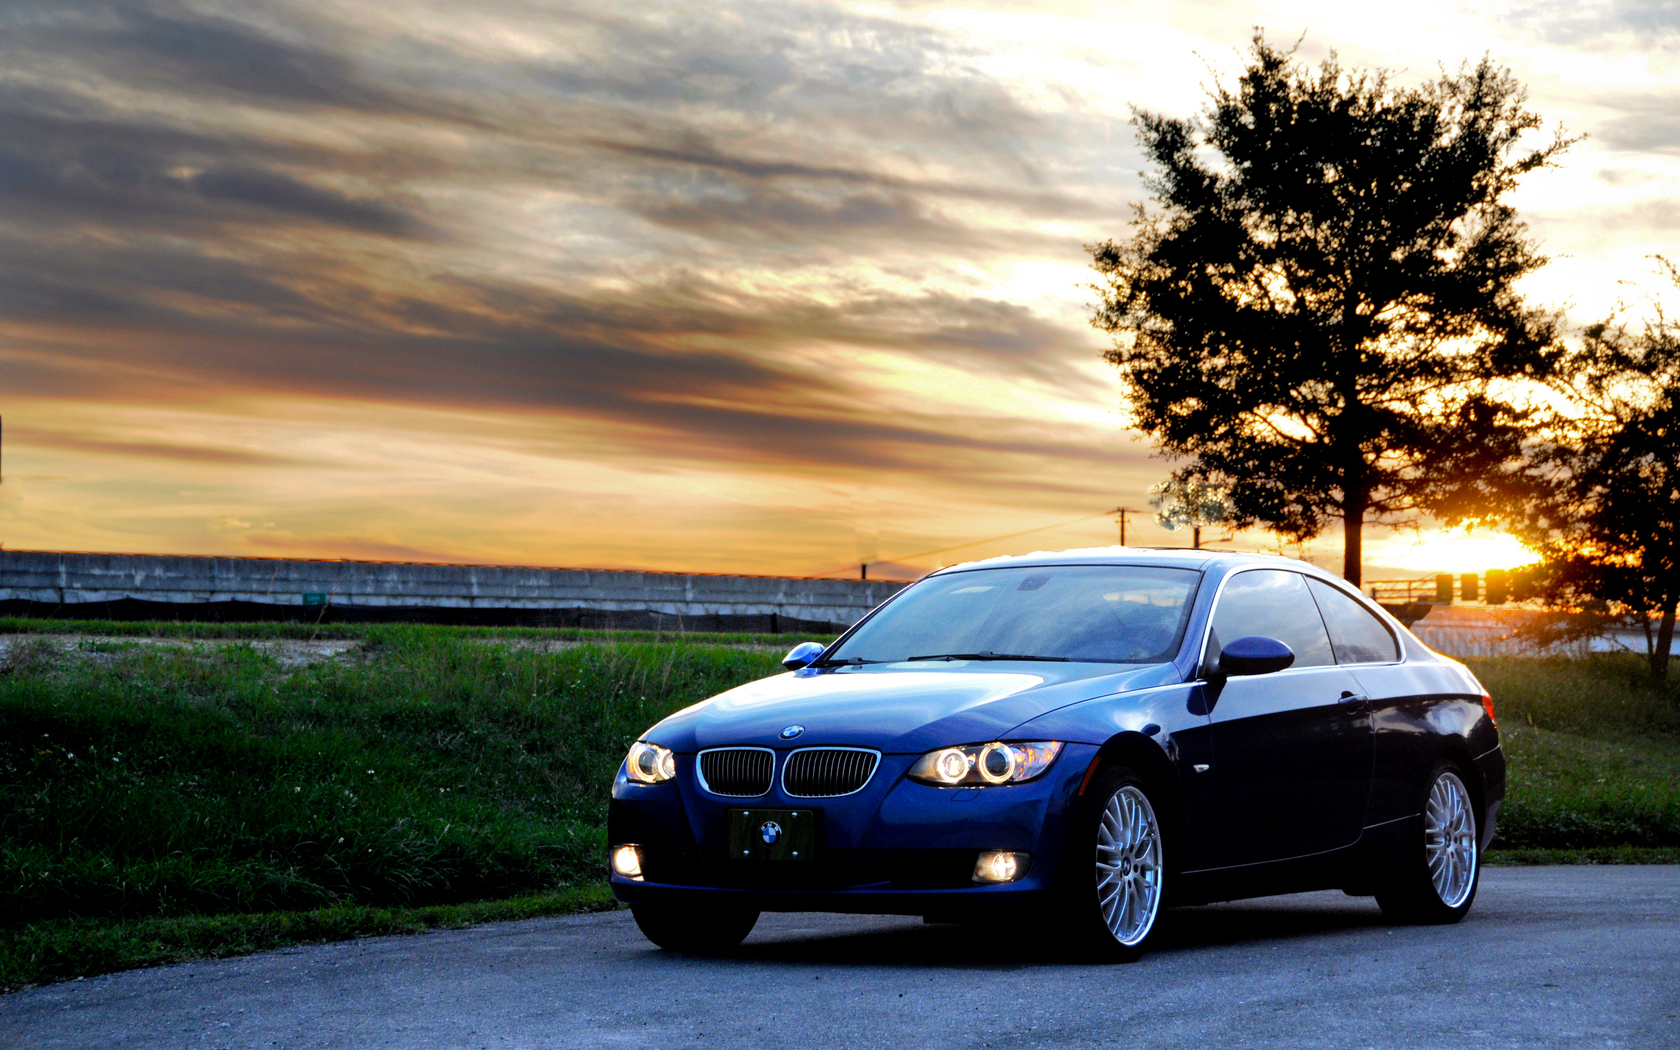 Car With Road >> Bmw Car On Road Wallpapers